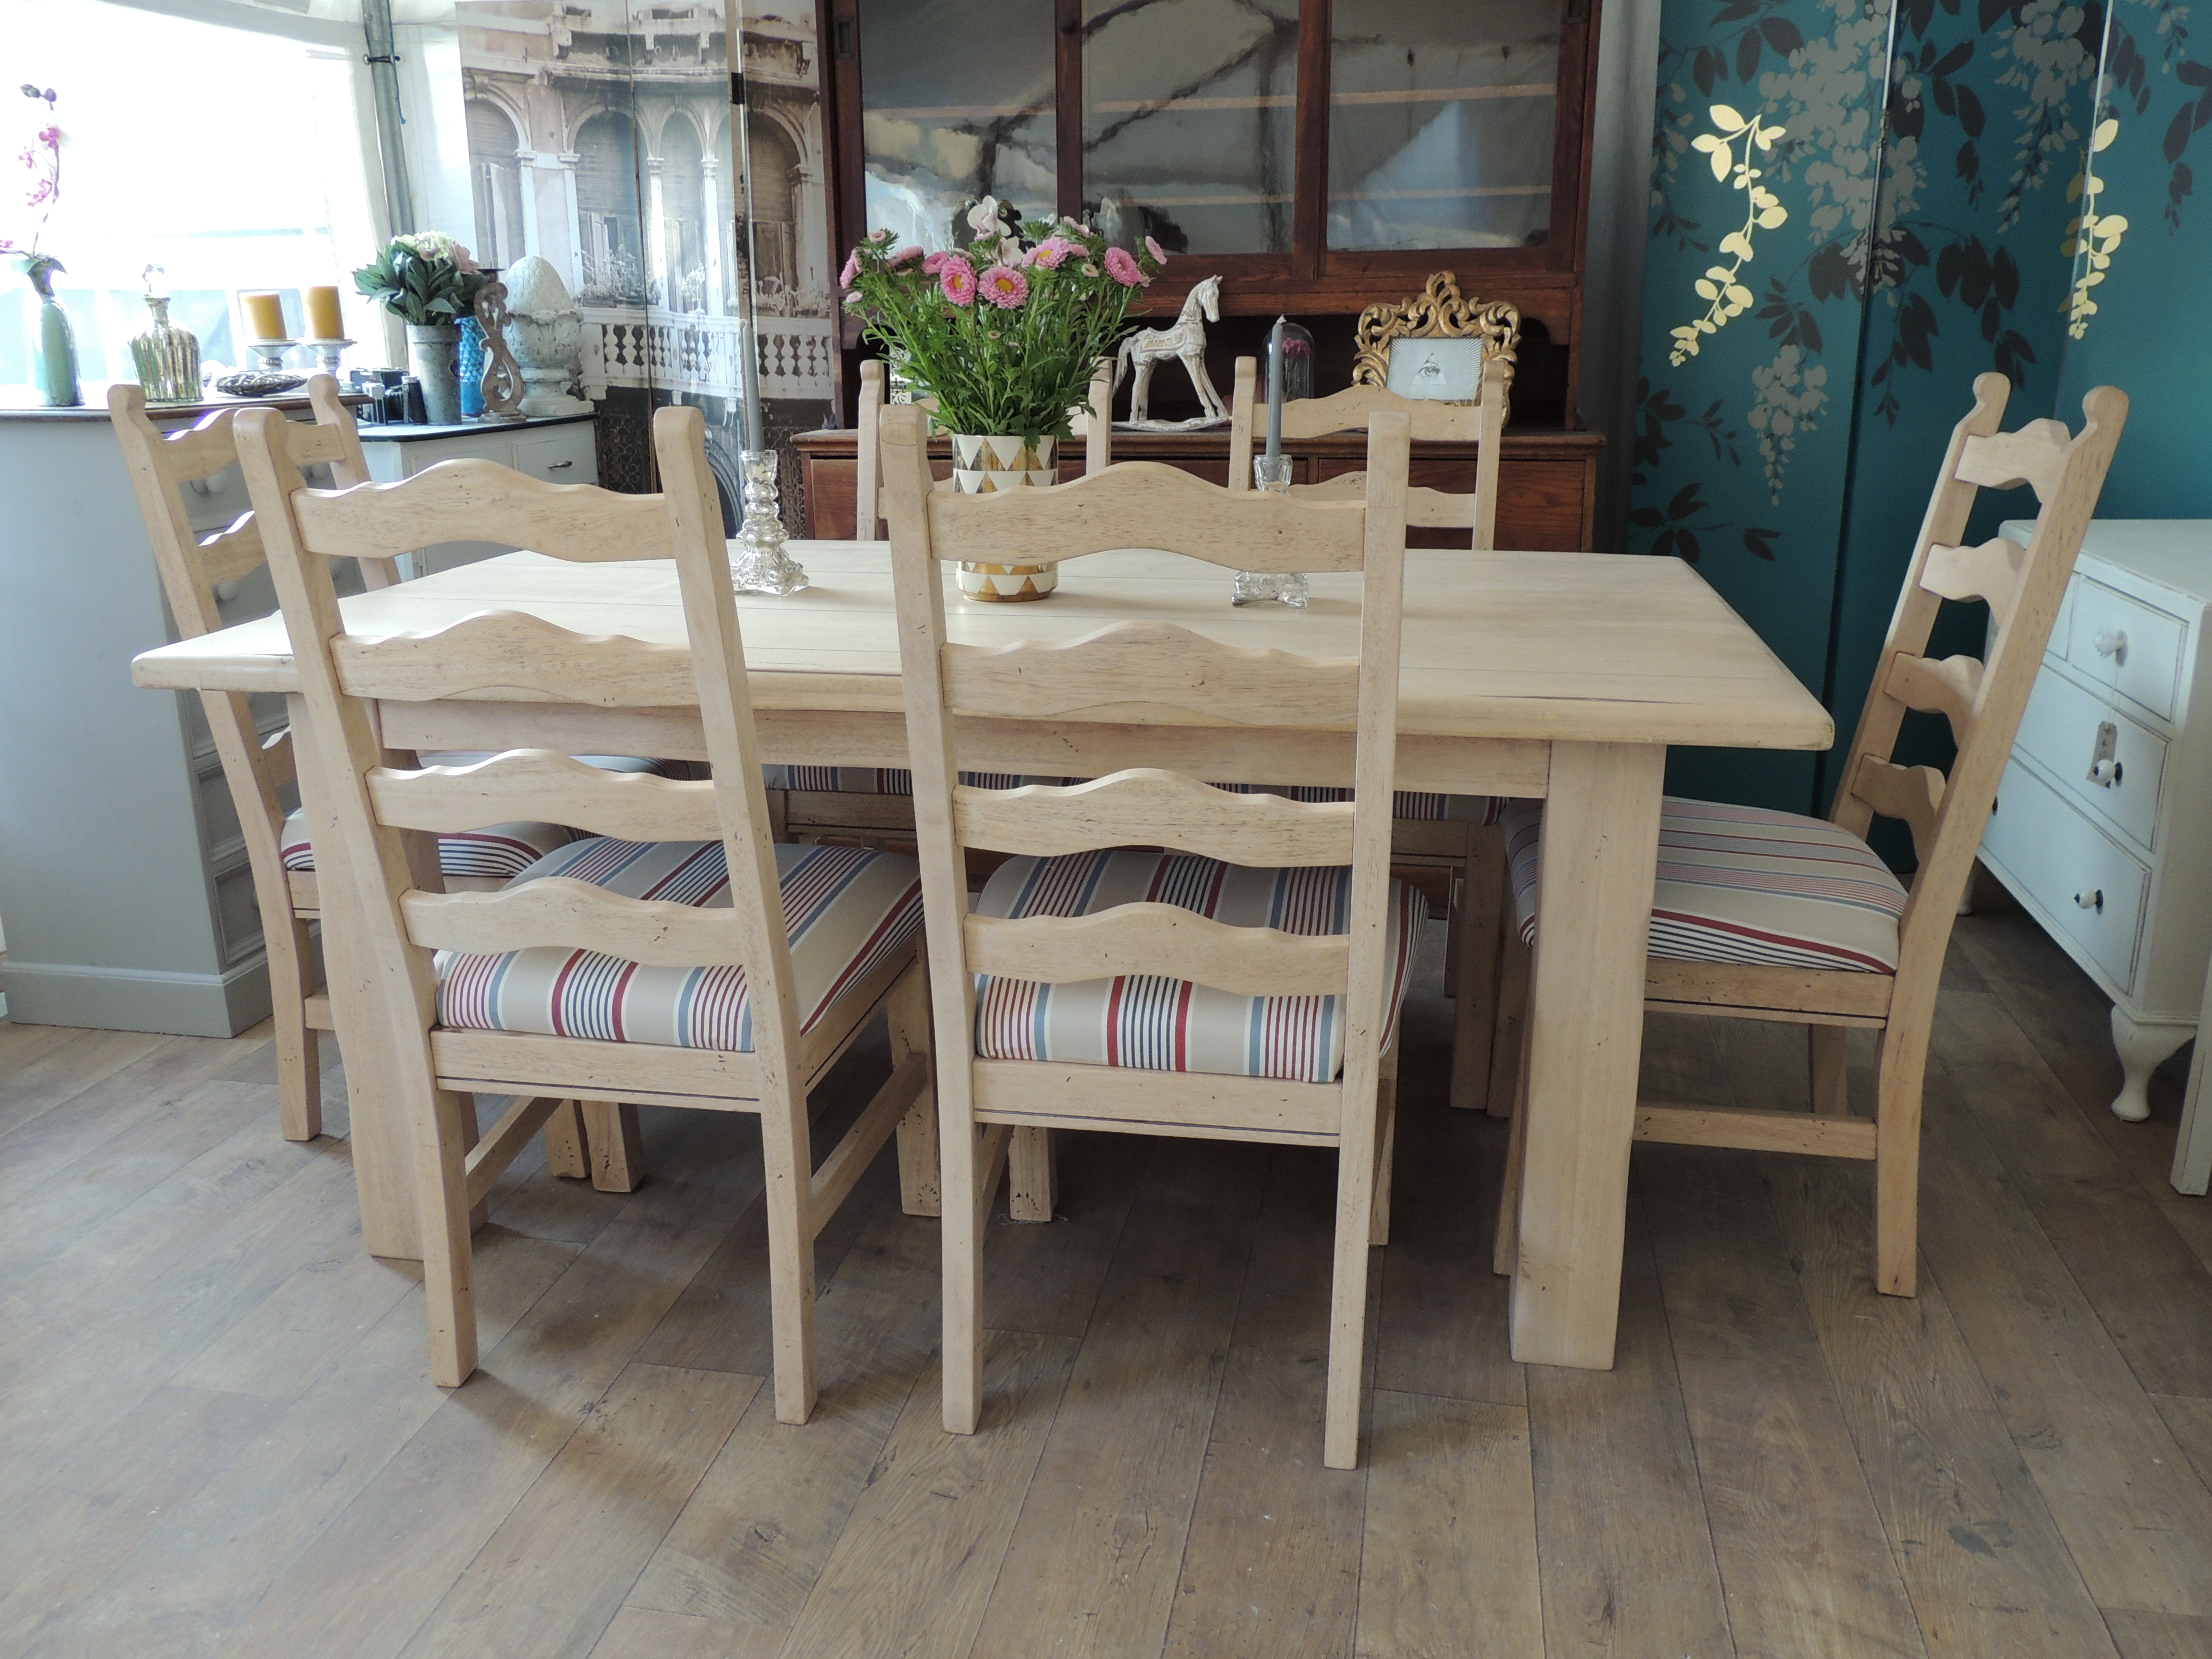 lovely rustic farmhouse style dining table with six chairs eclectivo london furniture with soul. Black Bedroom Furniture Sets. Home Design Ideas